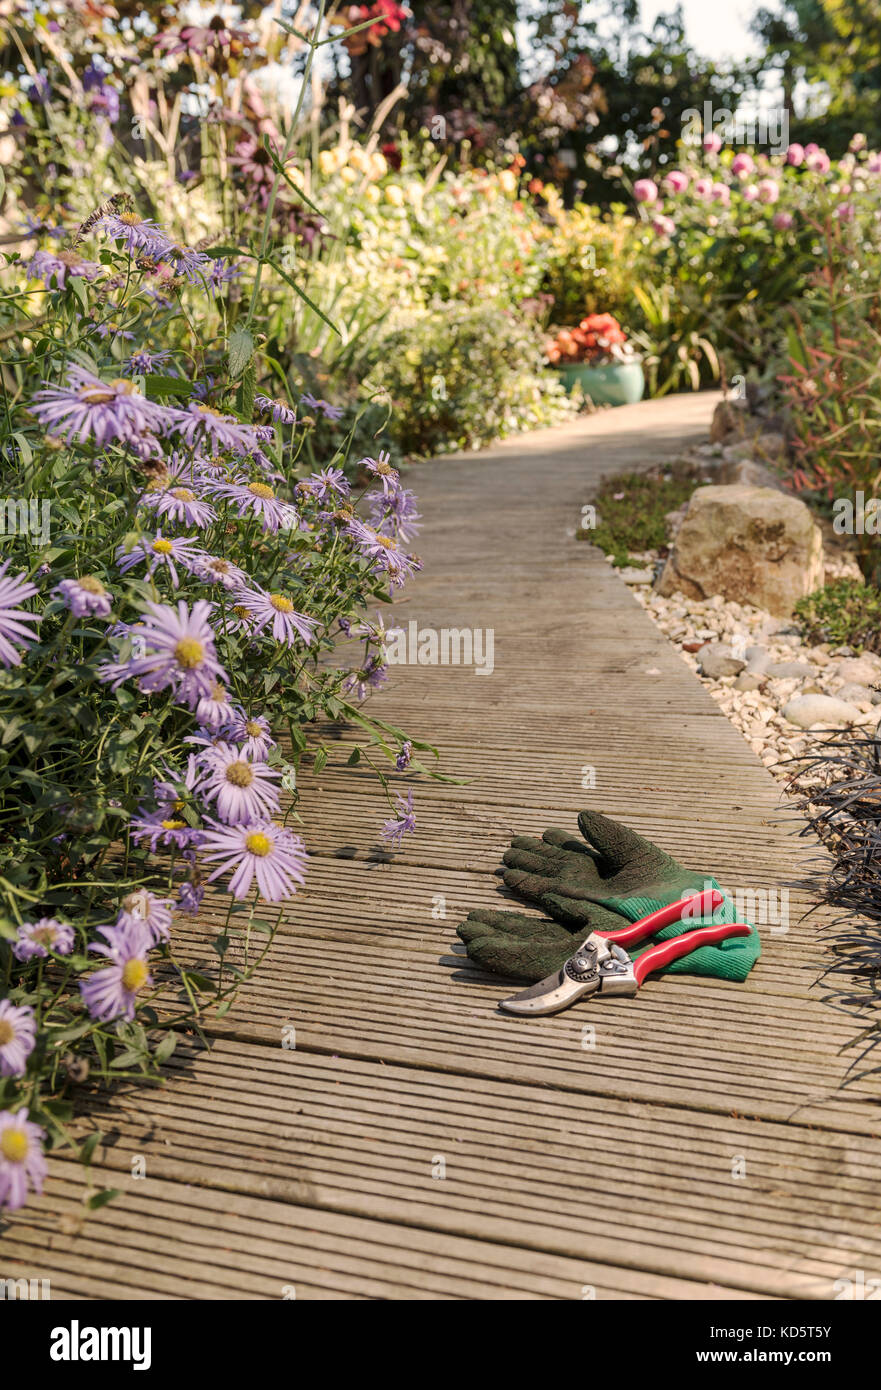 Secateurs and garden gloves on decking. Stock Photo